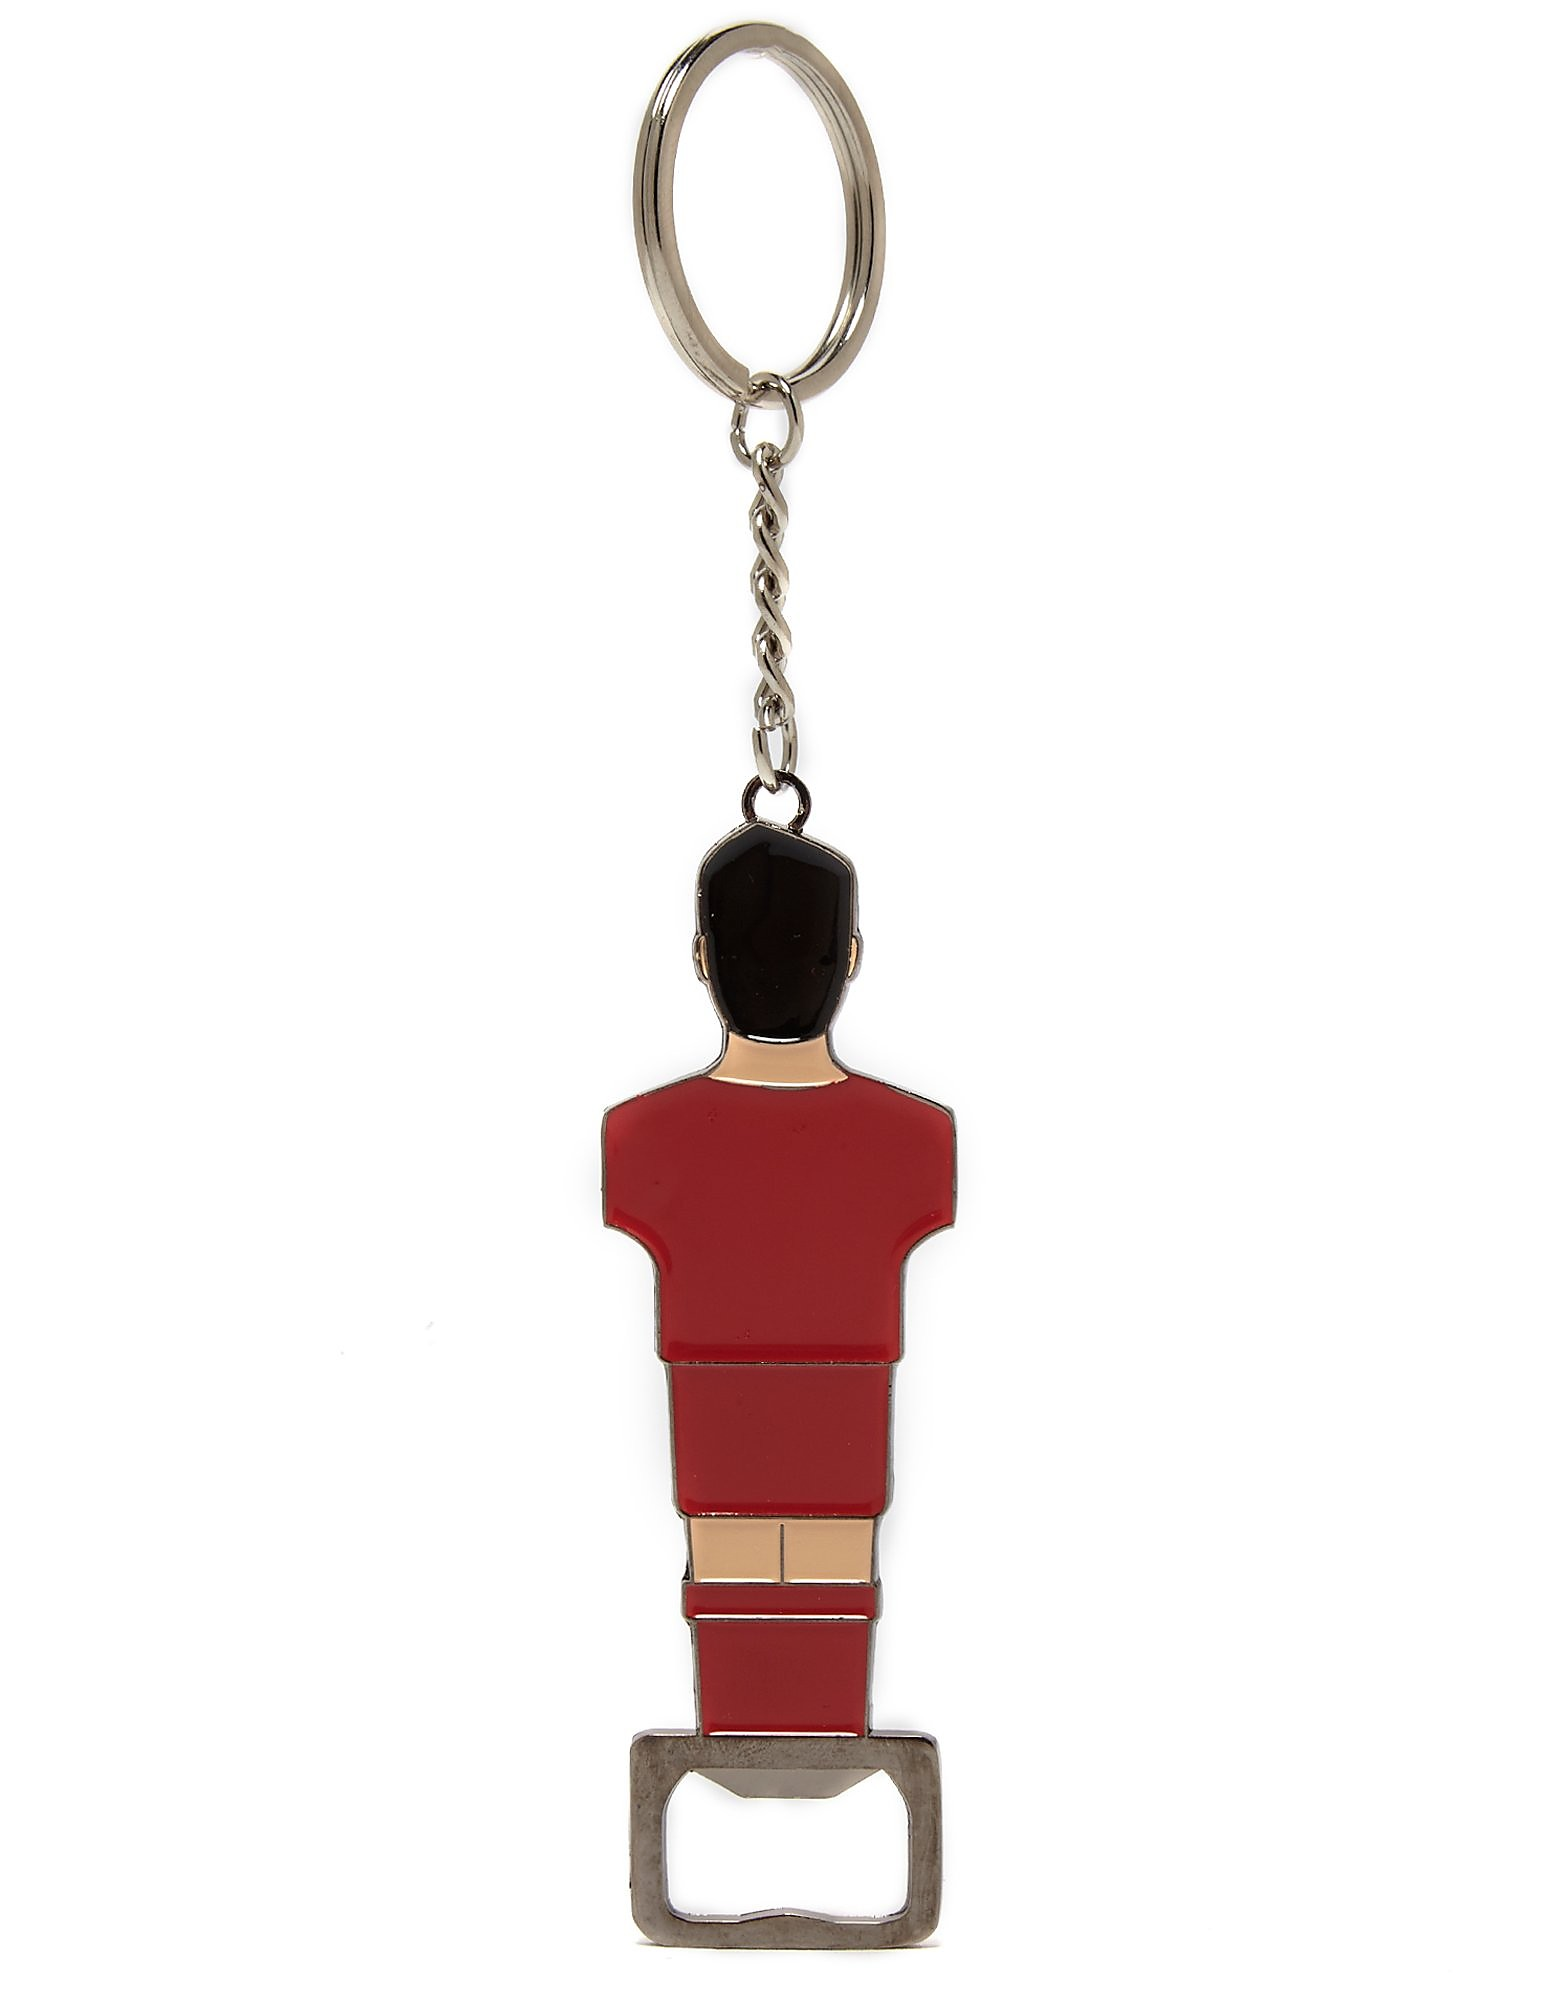 Official Team Wales Bottle Opener Key Ring